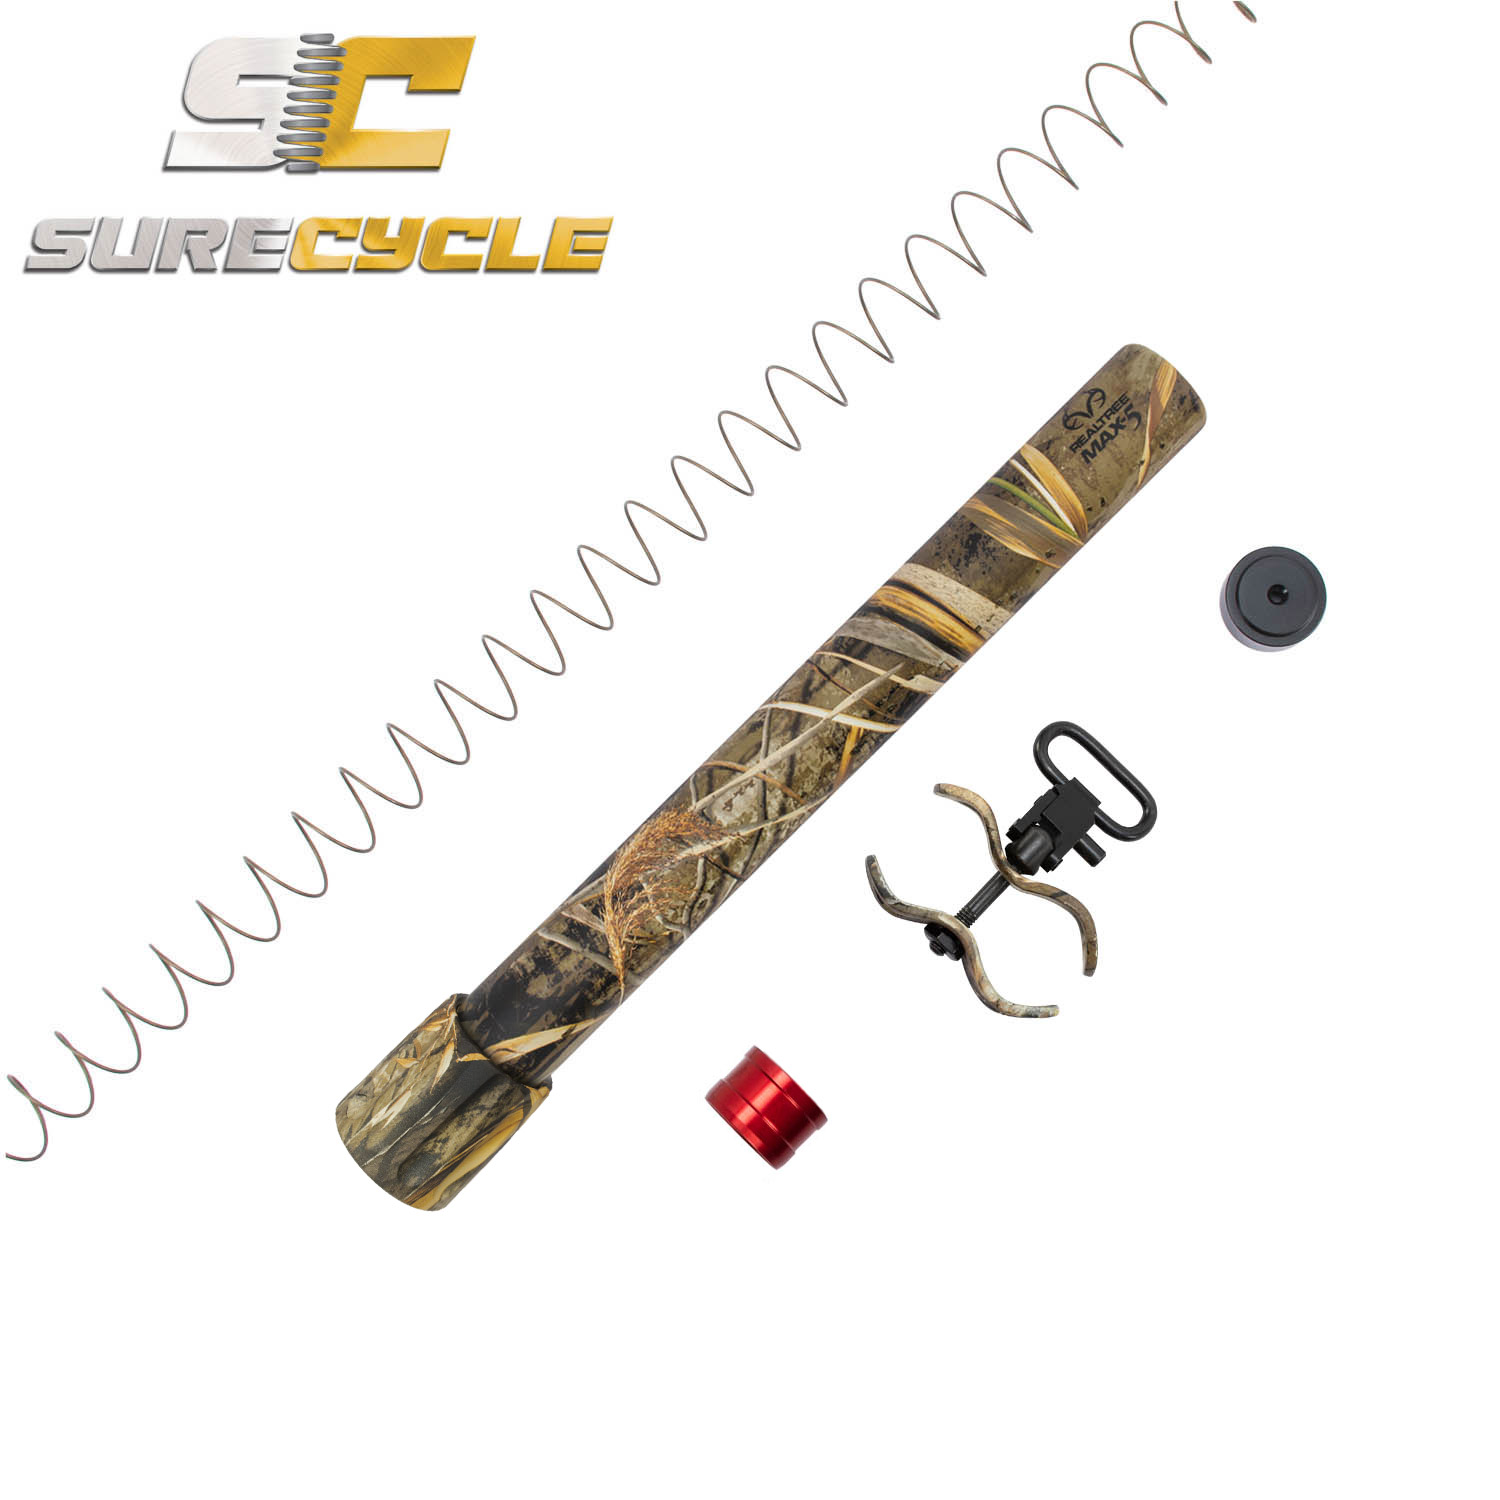 BRILEY SPORTING BOLT HANDLE BROWNING WINCHESTER SX2 SILVER COLORS RED BLACK BLUE